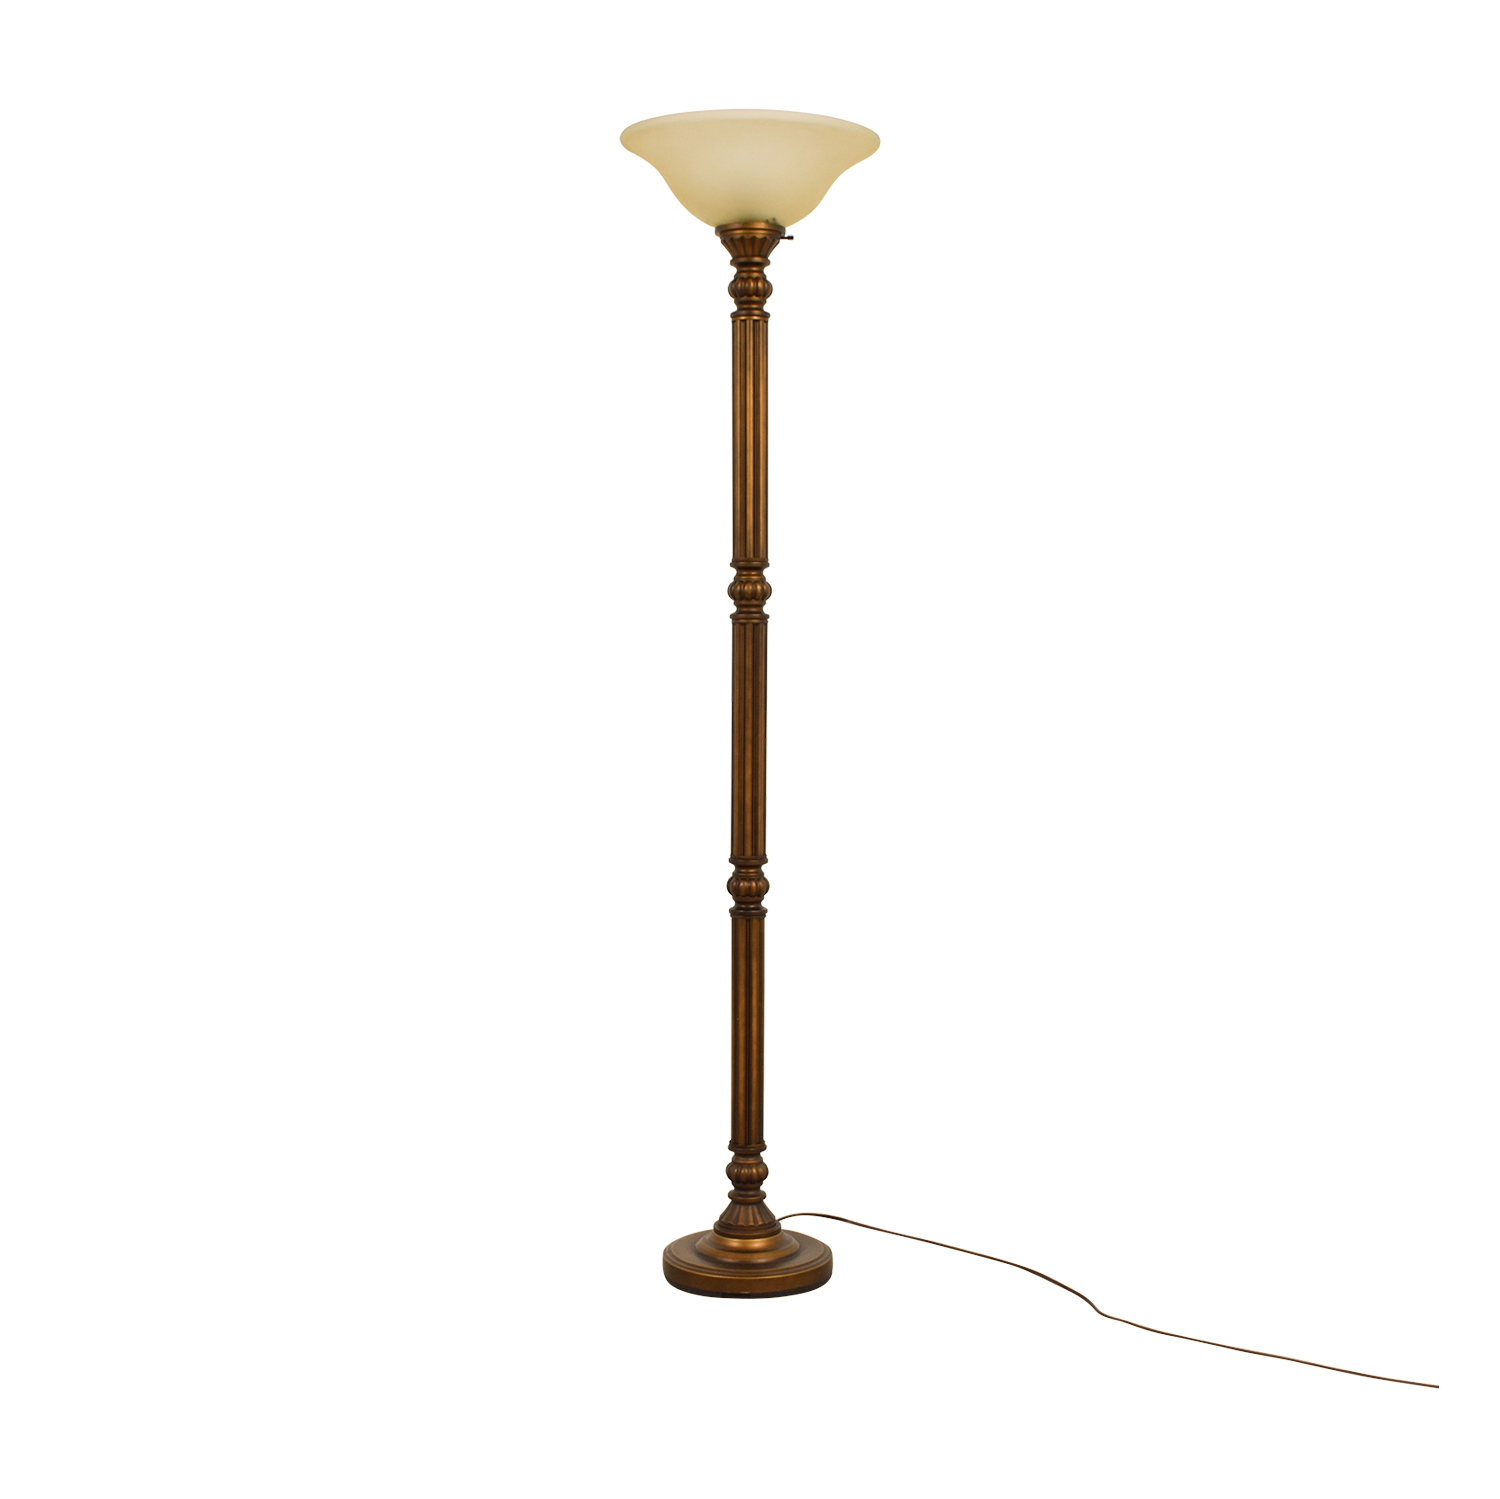 Bronze Floor Lamp for sale